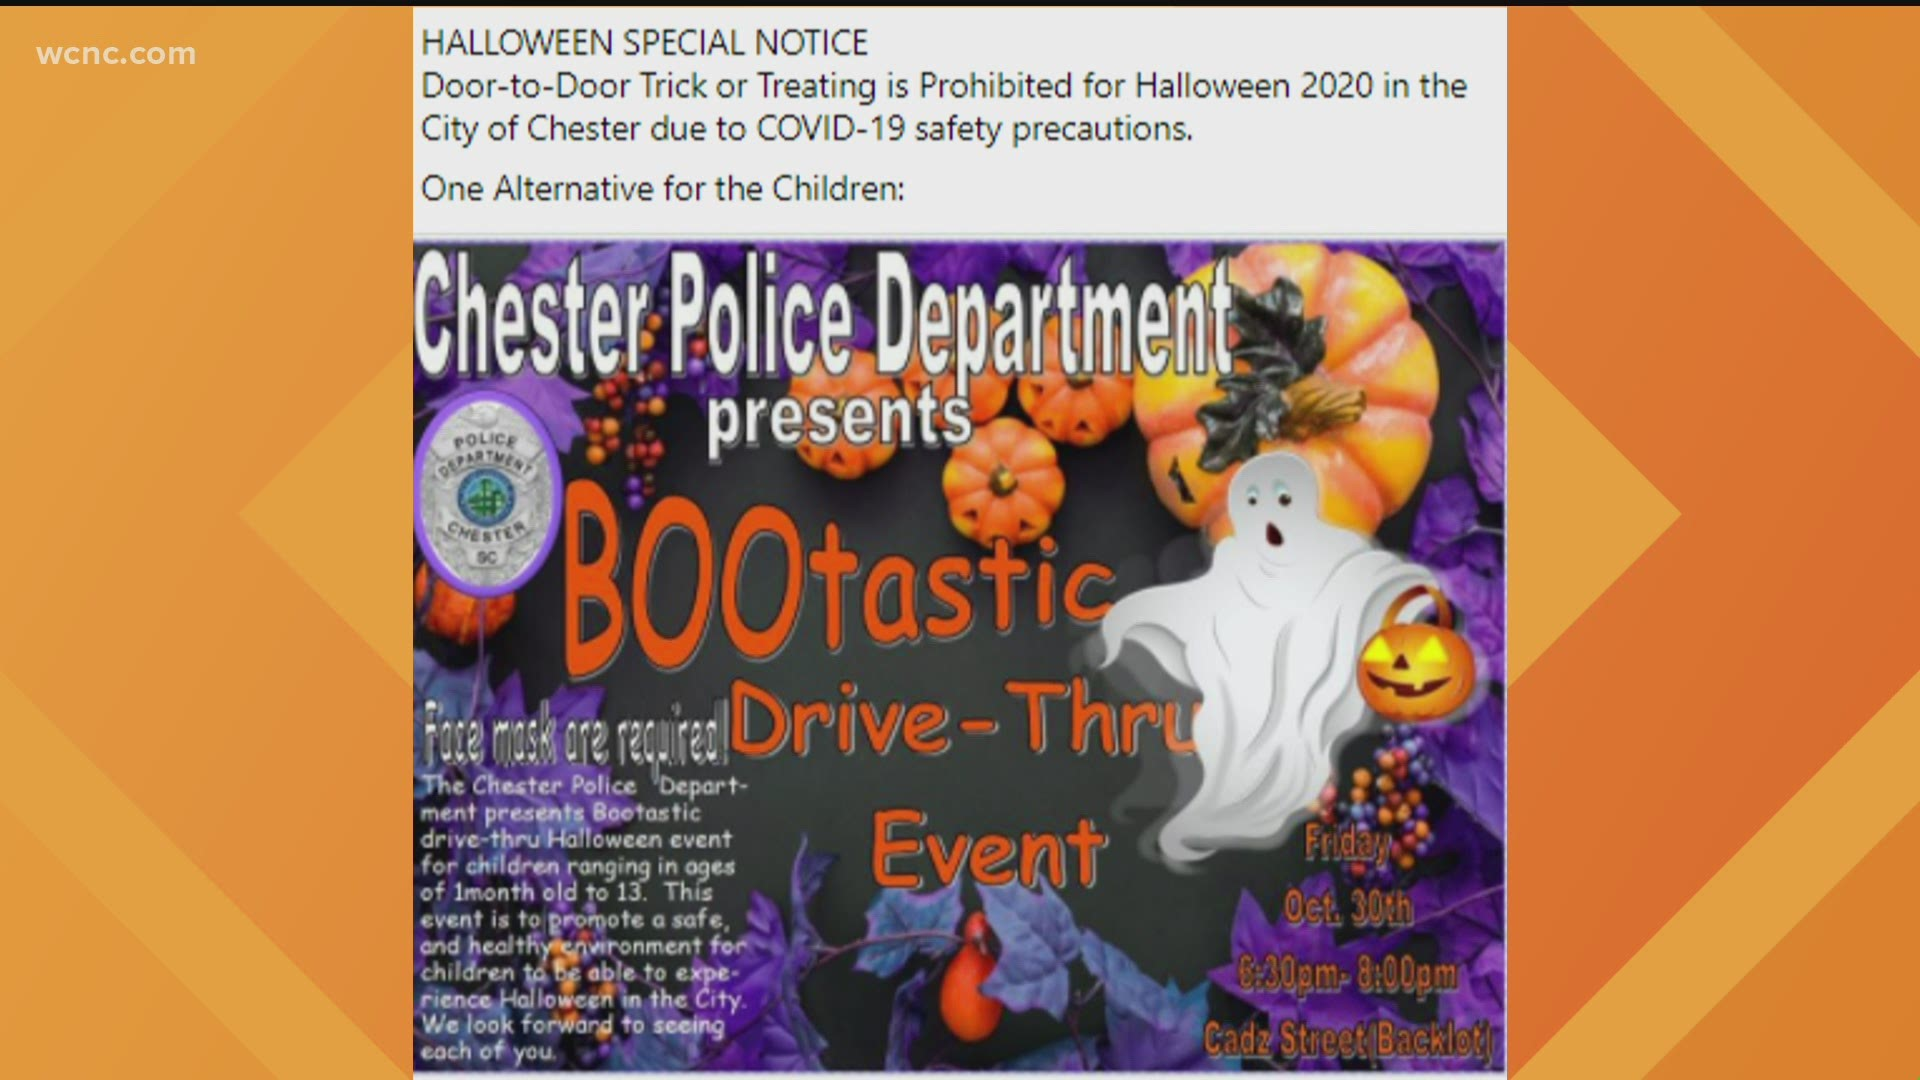 Halloween Events 2020 South Carolina Chester, SC bans trick or treating amid Covid 19 concerns | wltx.com